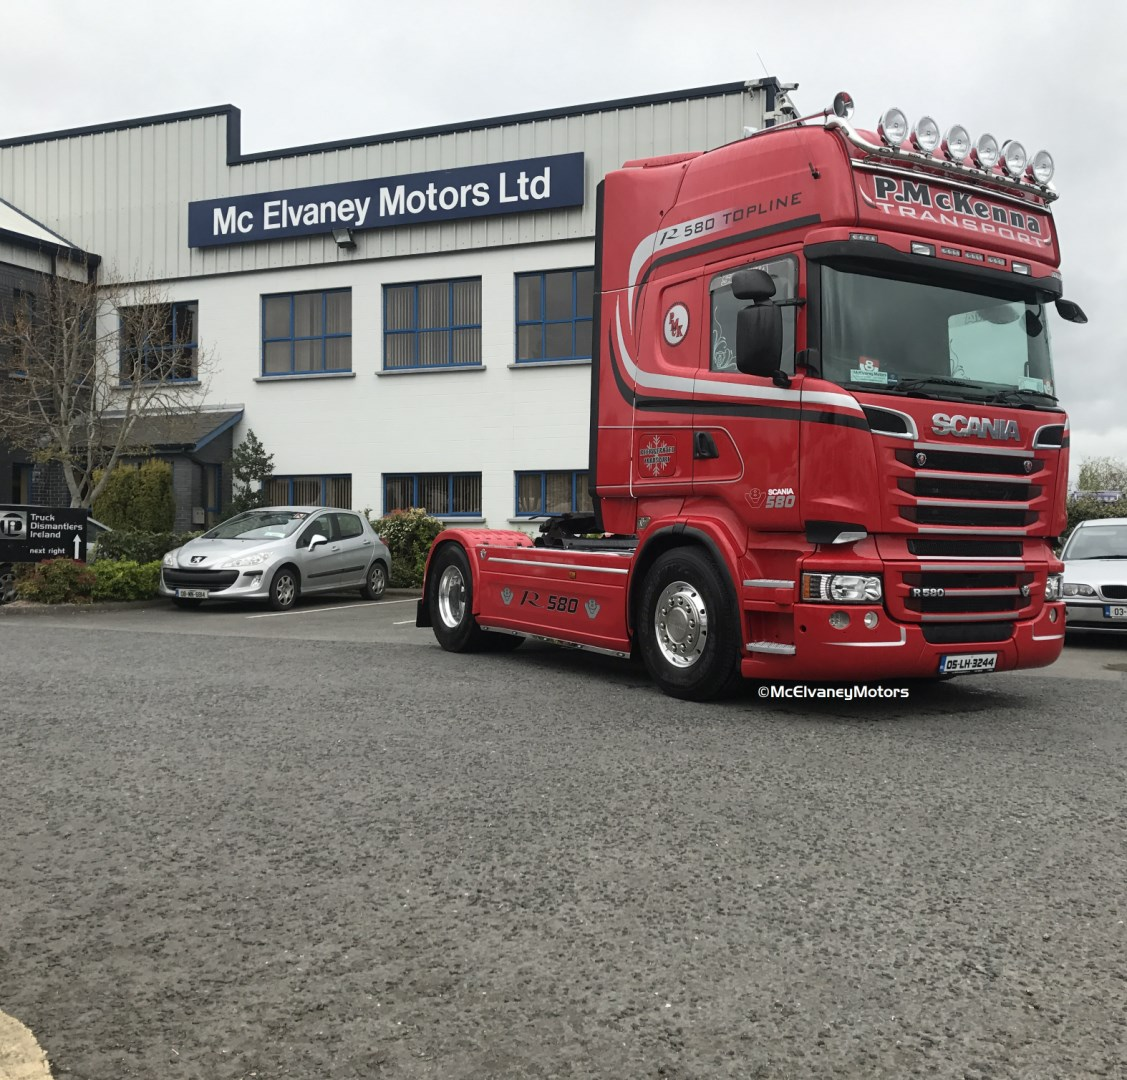 Beautifully Restored 2005 Scania R580 for Paul McKenna